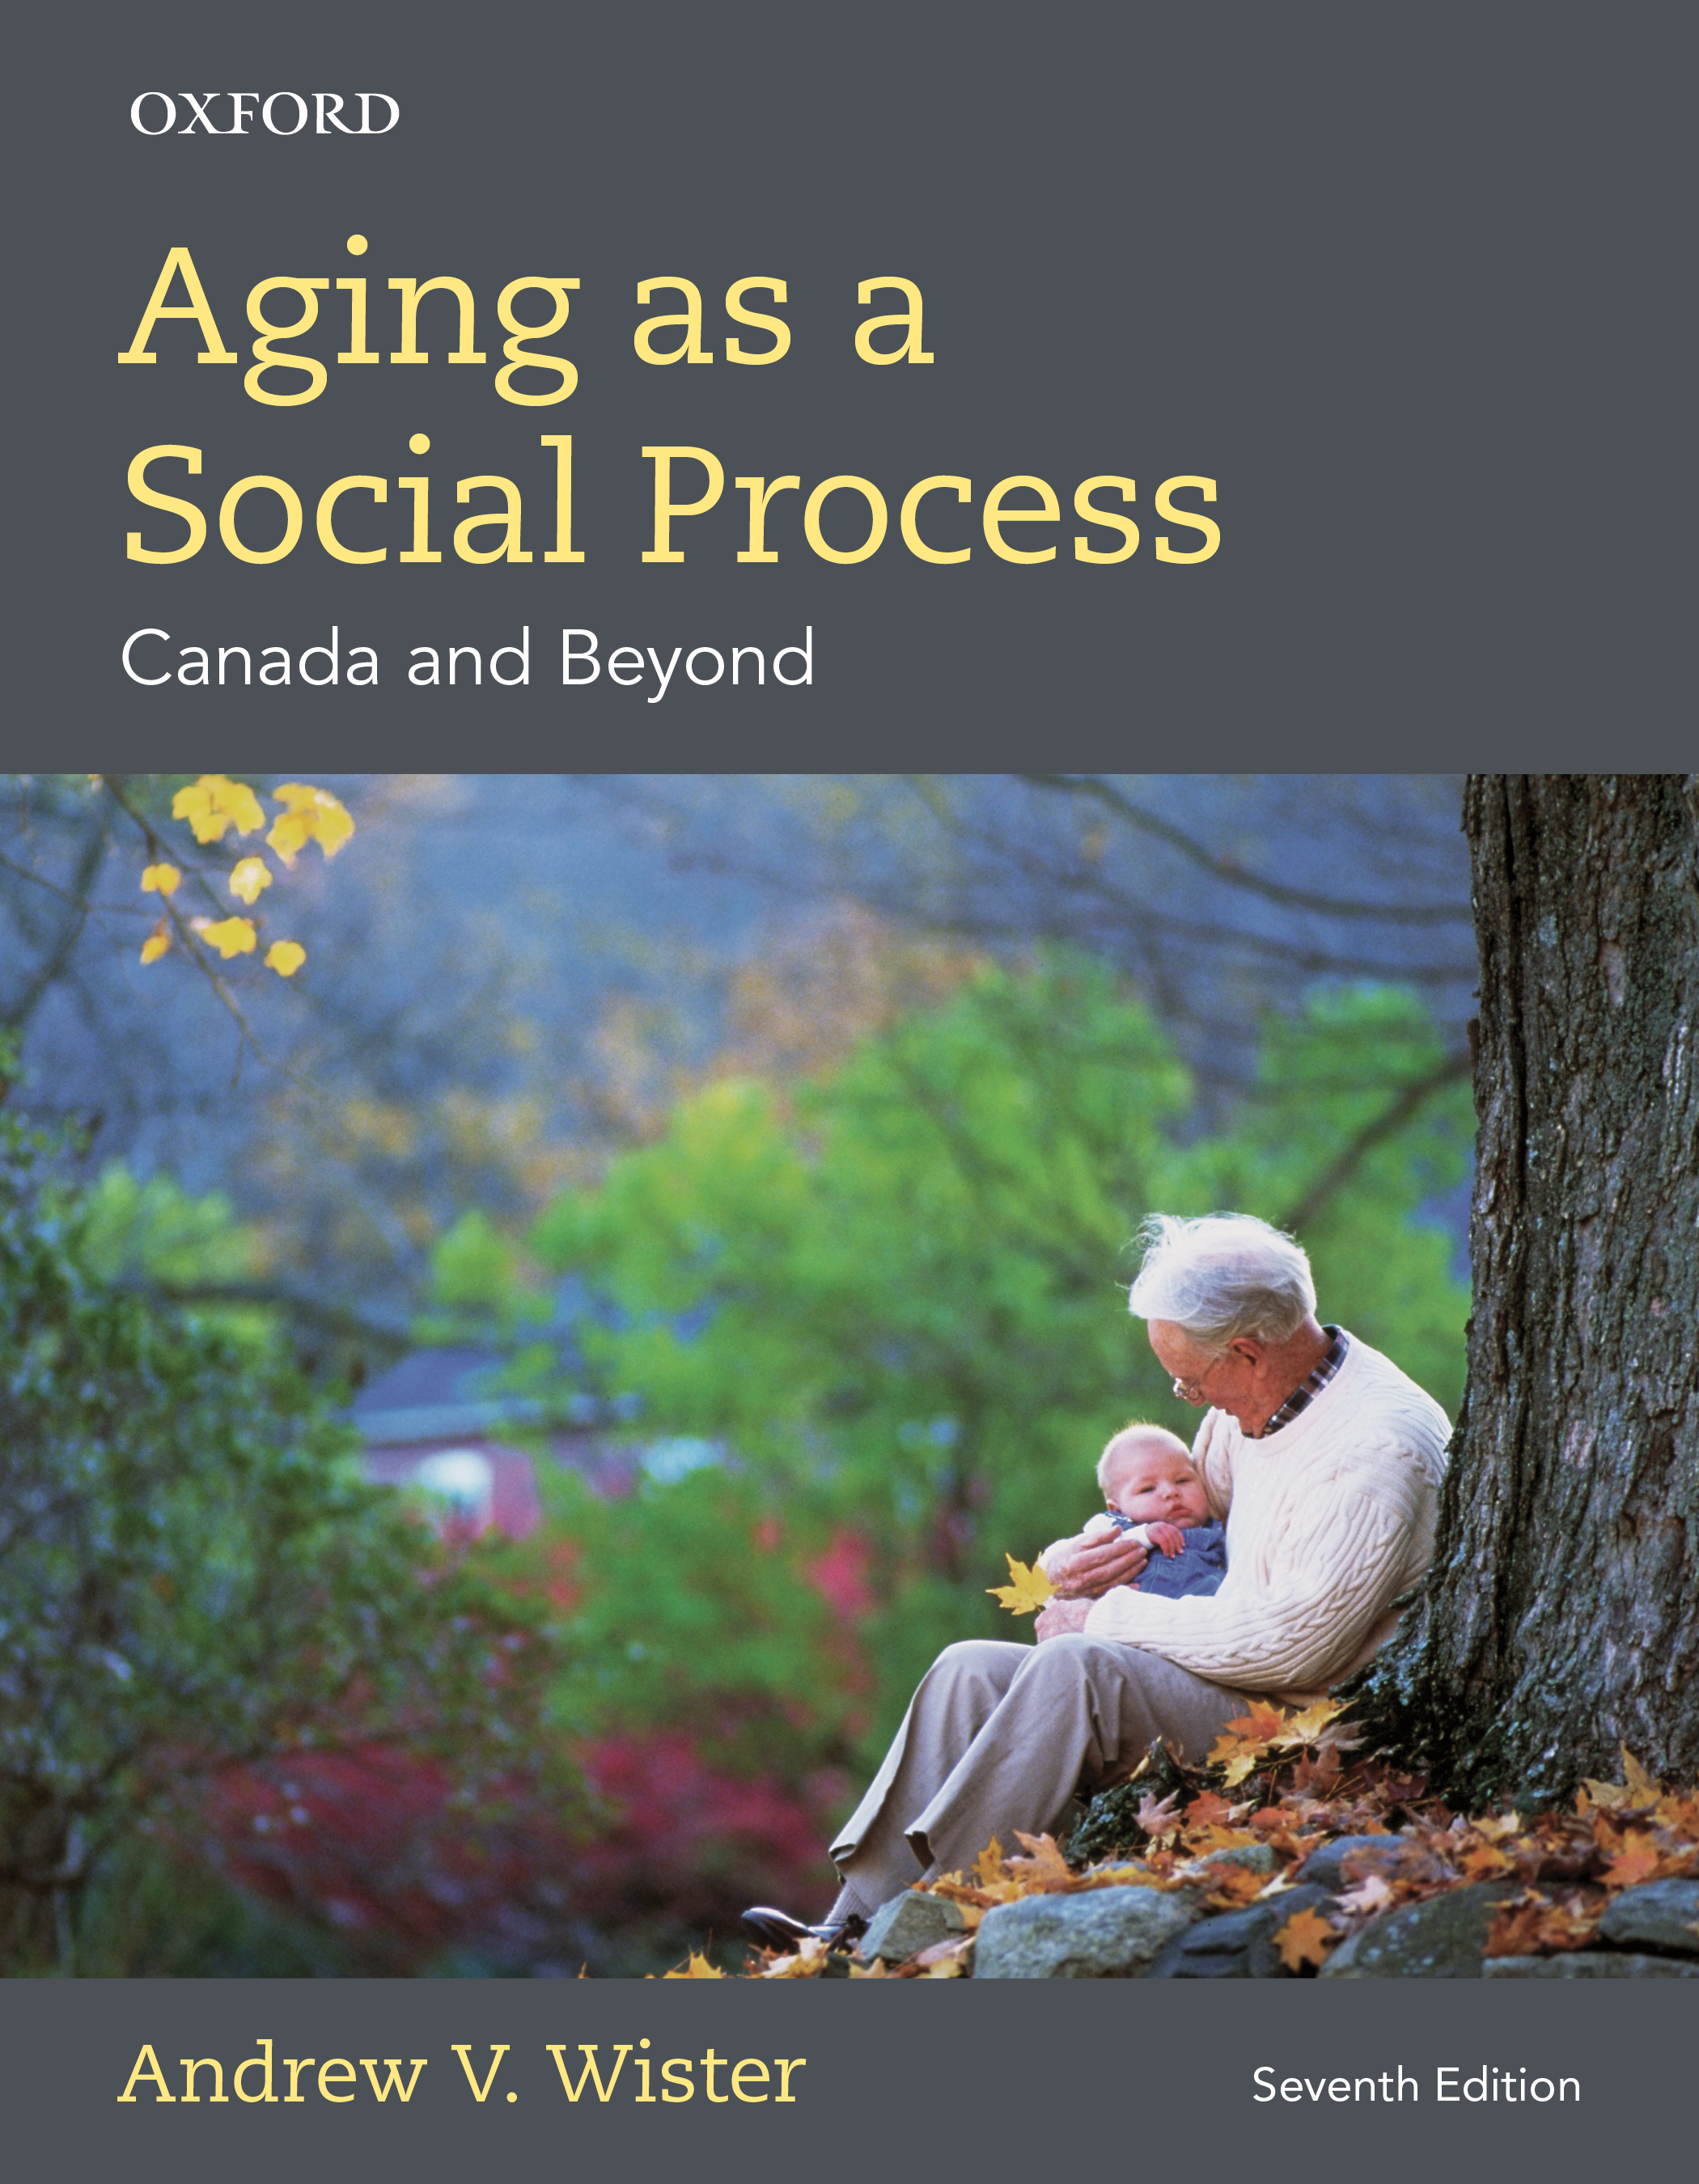 Aging as a Social Process 7e Instructor Resources